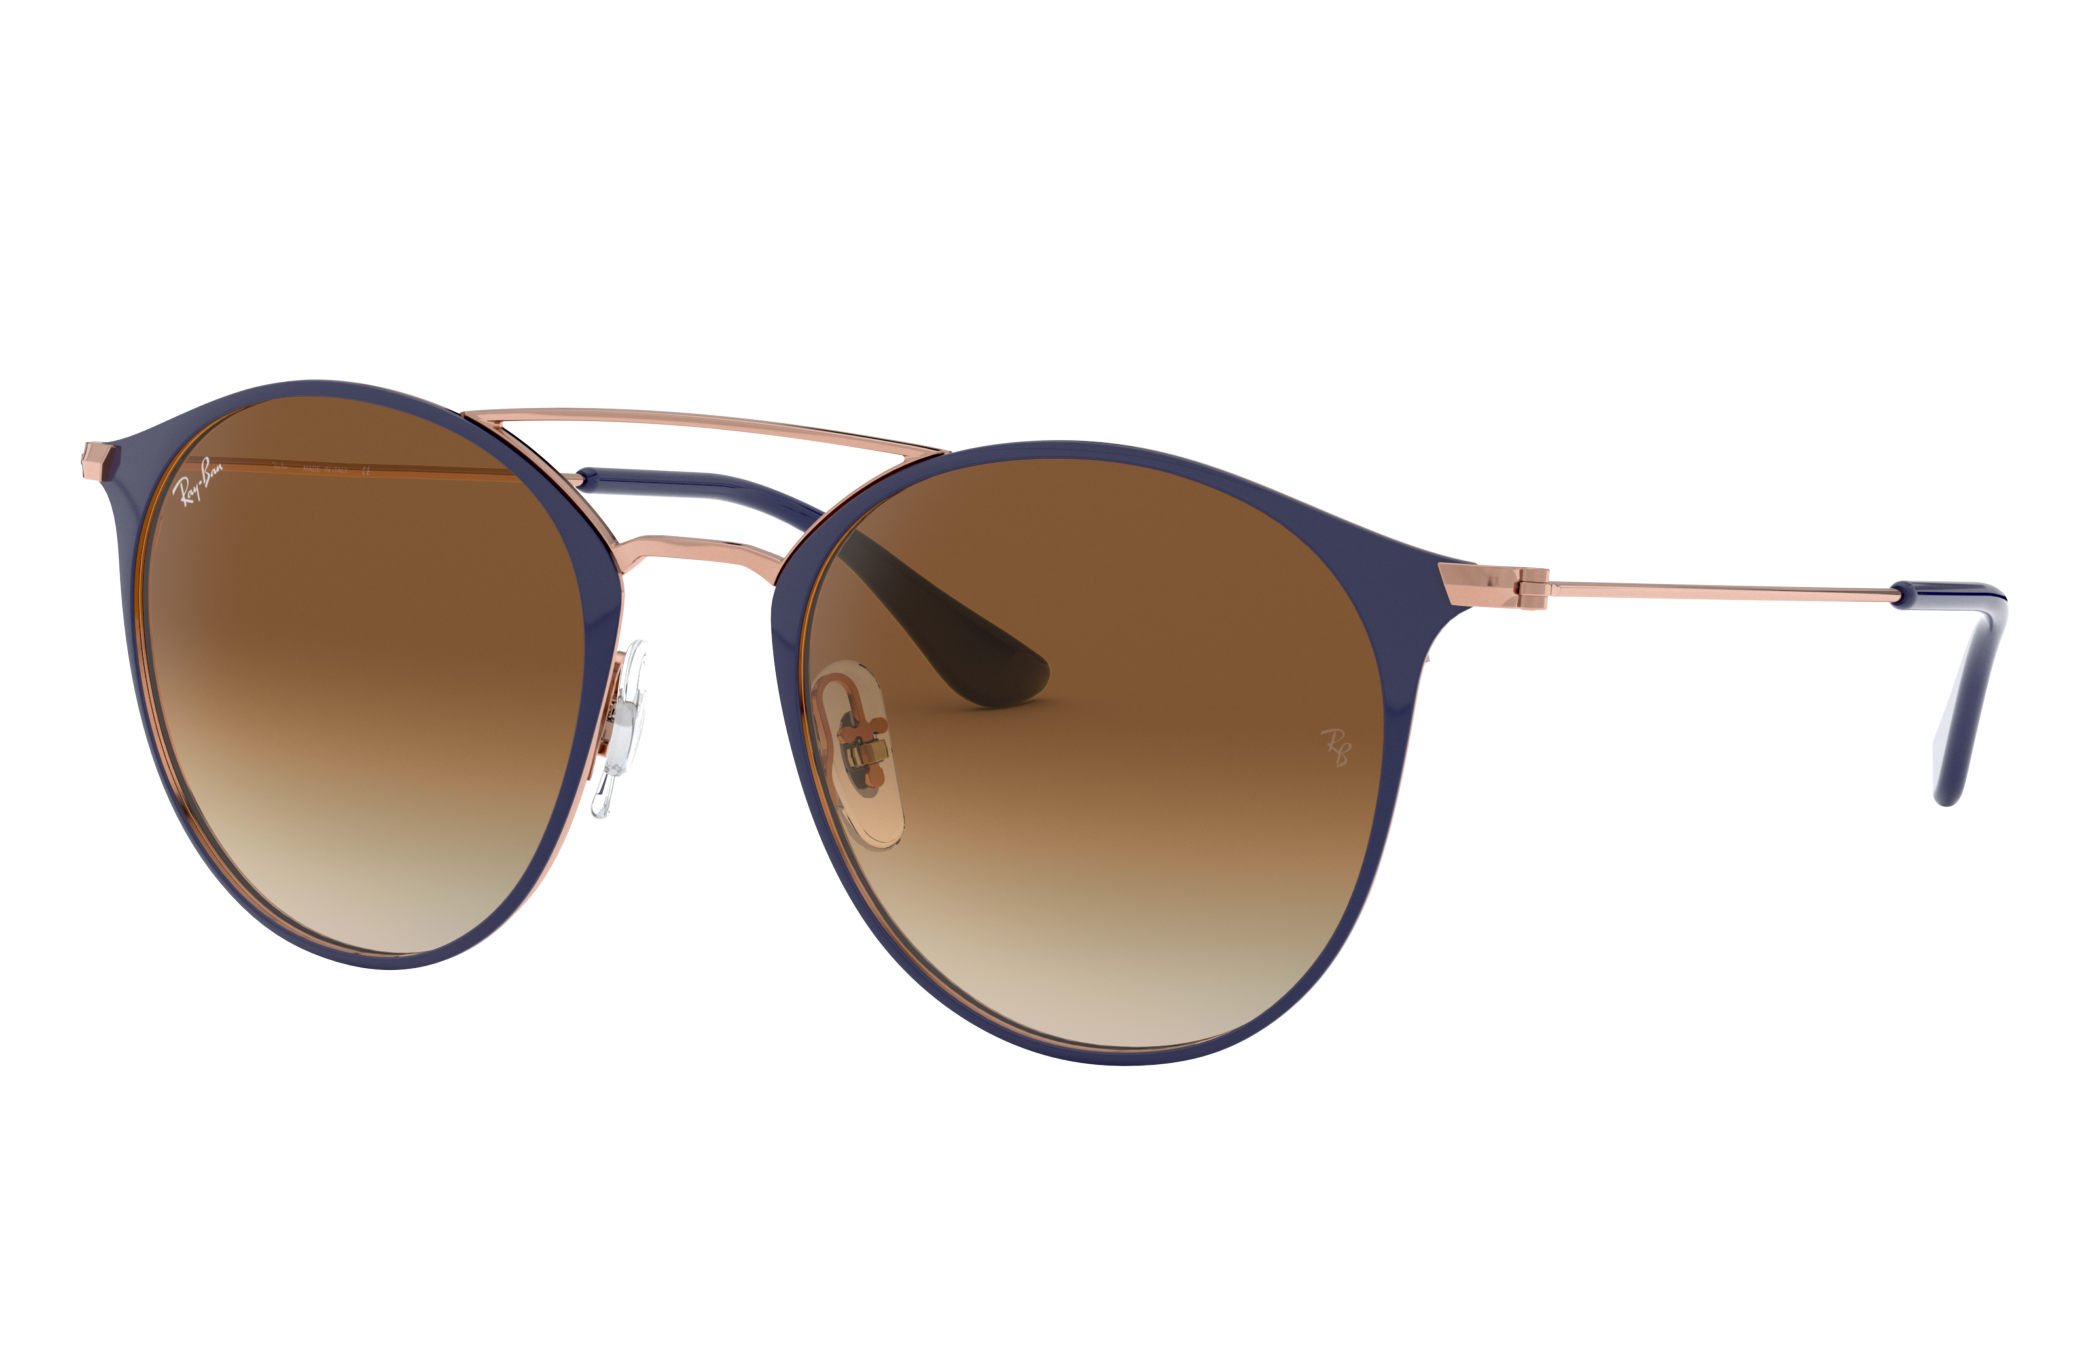 Ray-Ban Rb3546 Bronze-Copper, Brown Lenses - RB3546